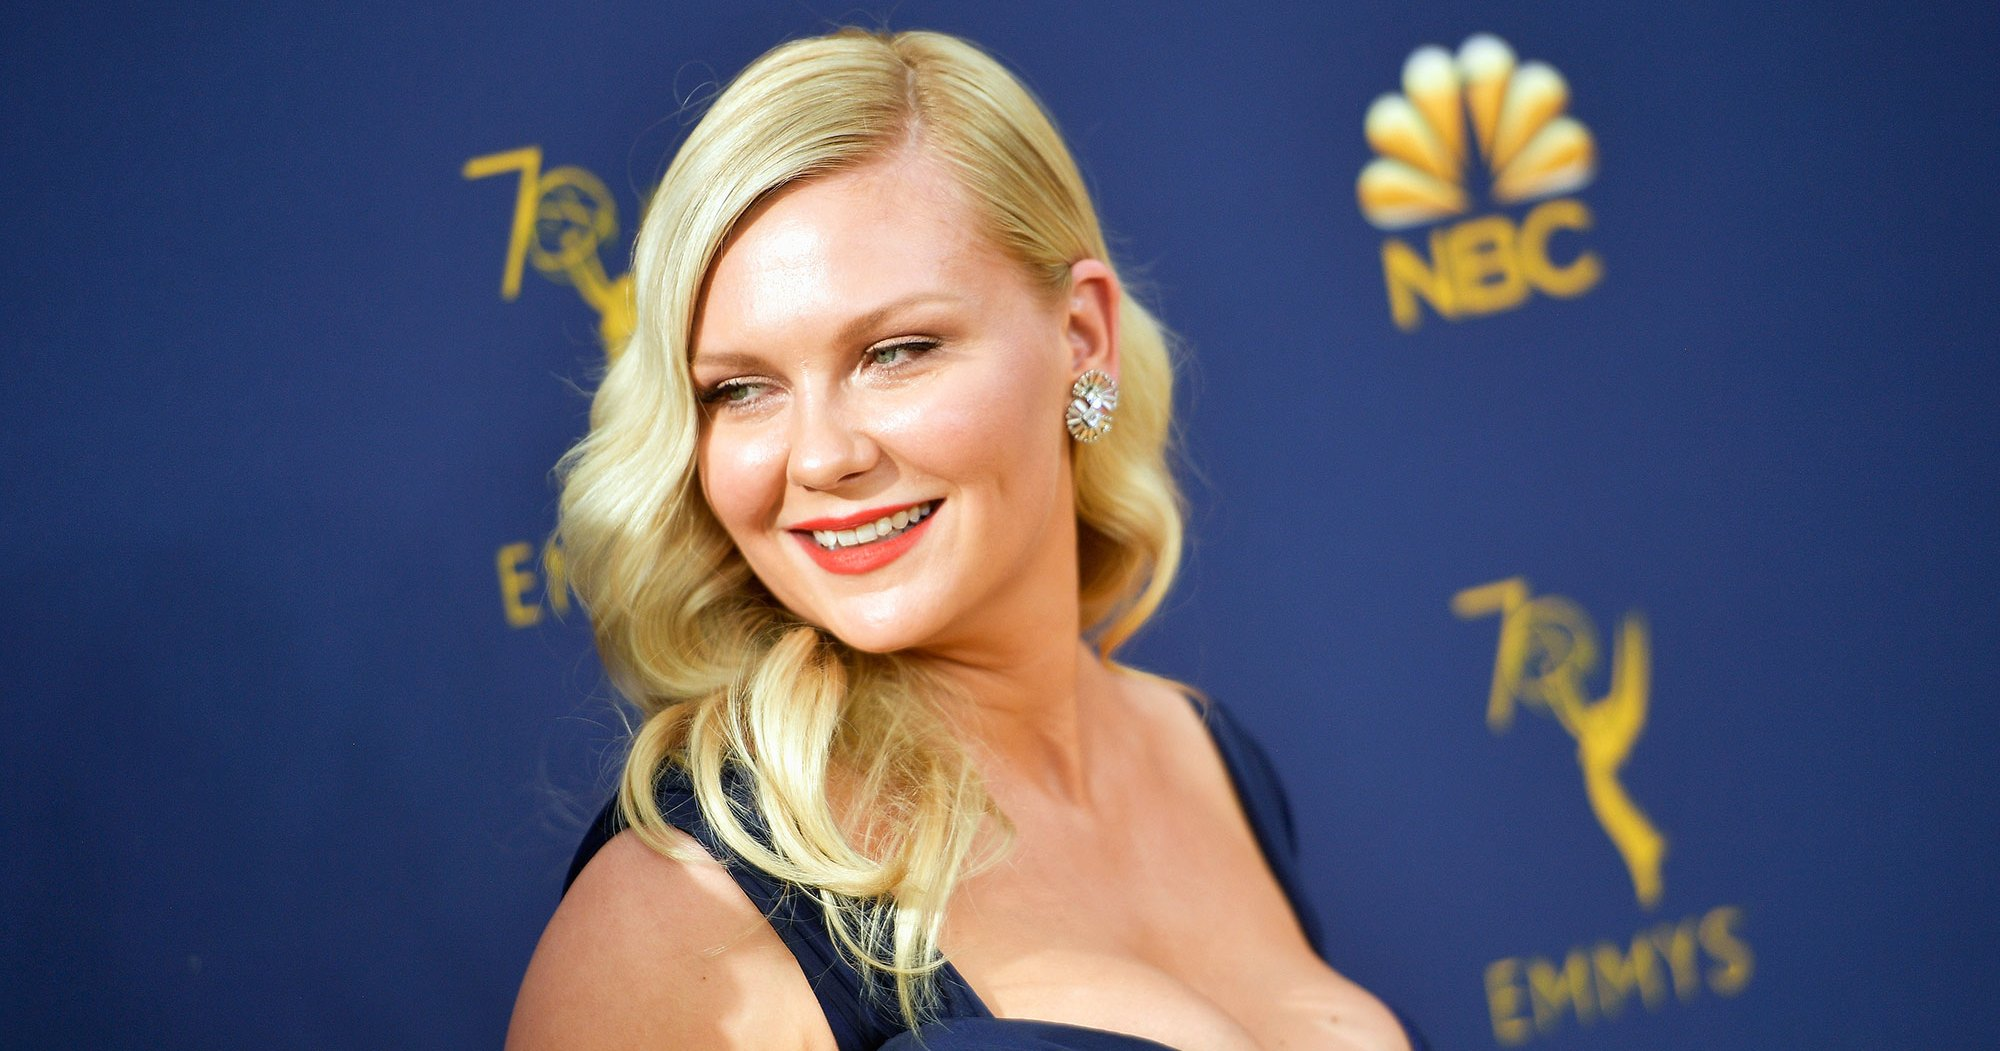 Kirsten Dunst Films in a Bathing Suit 6 Months After Giving Birth